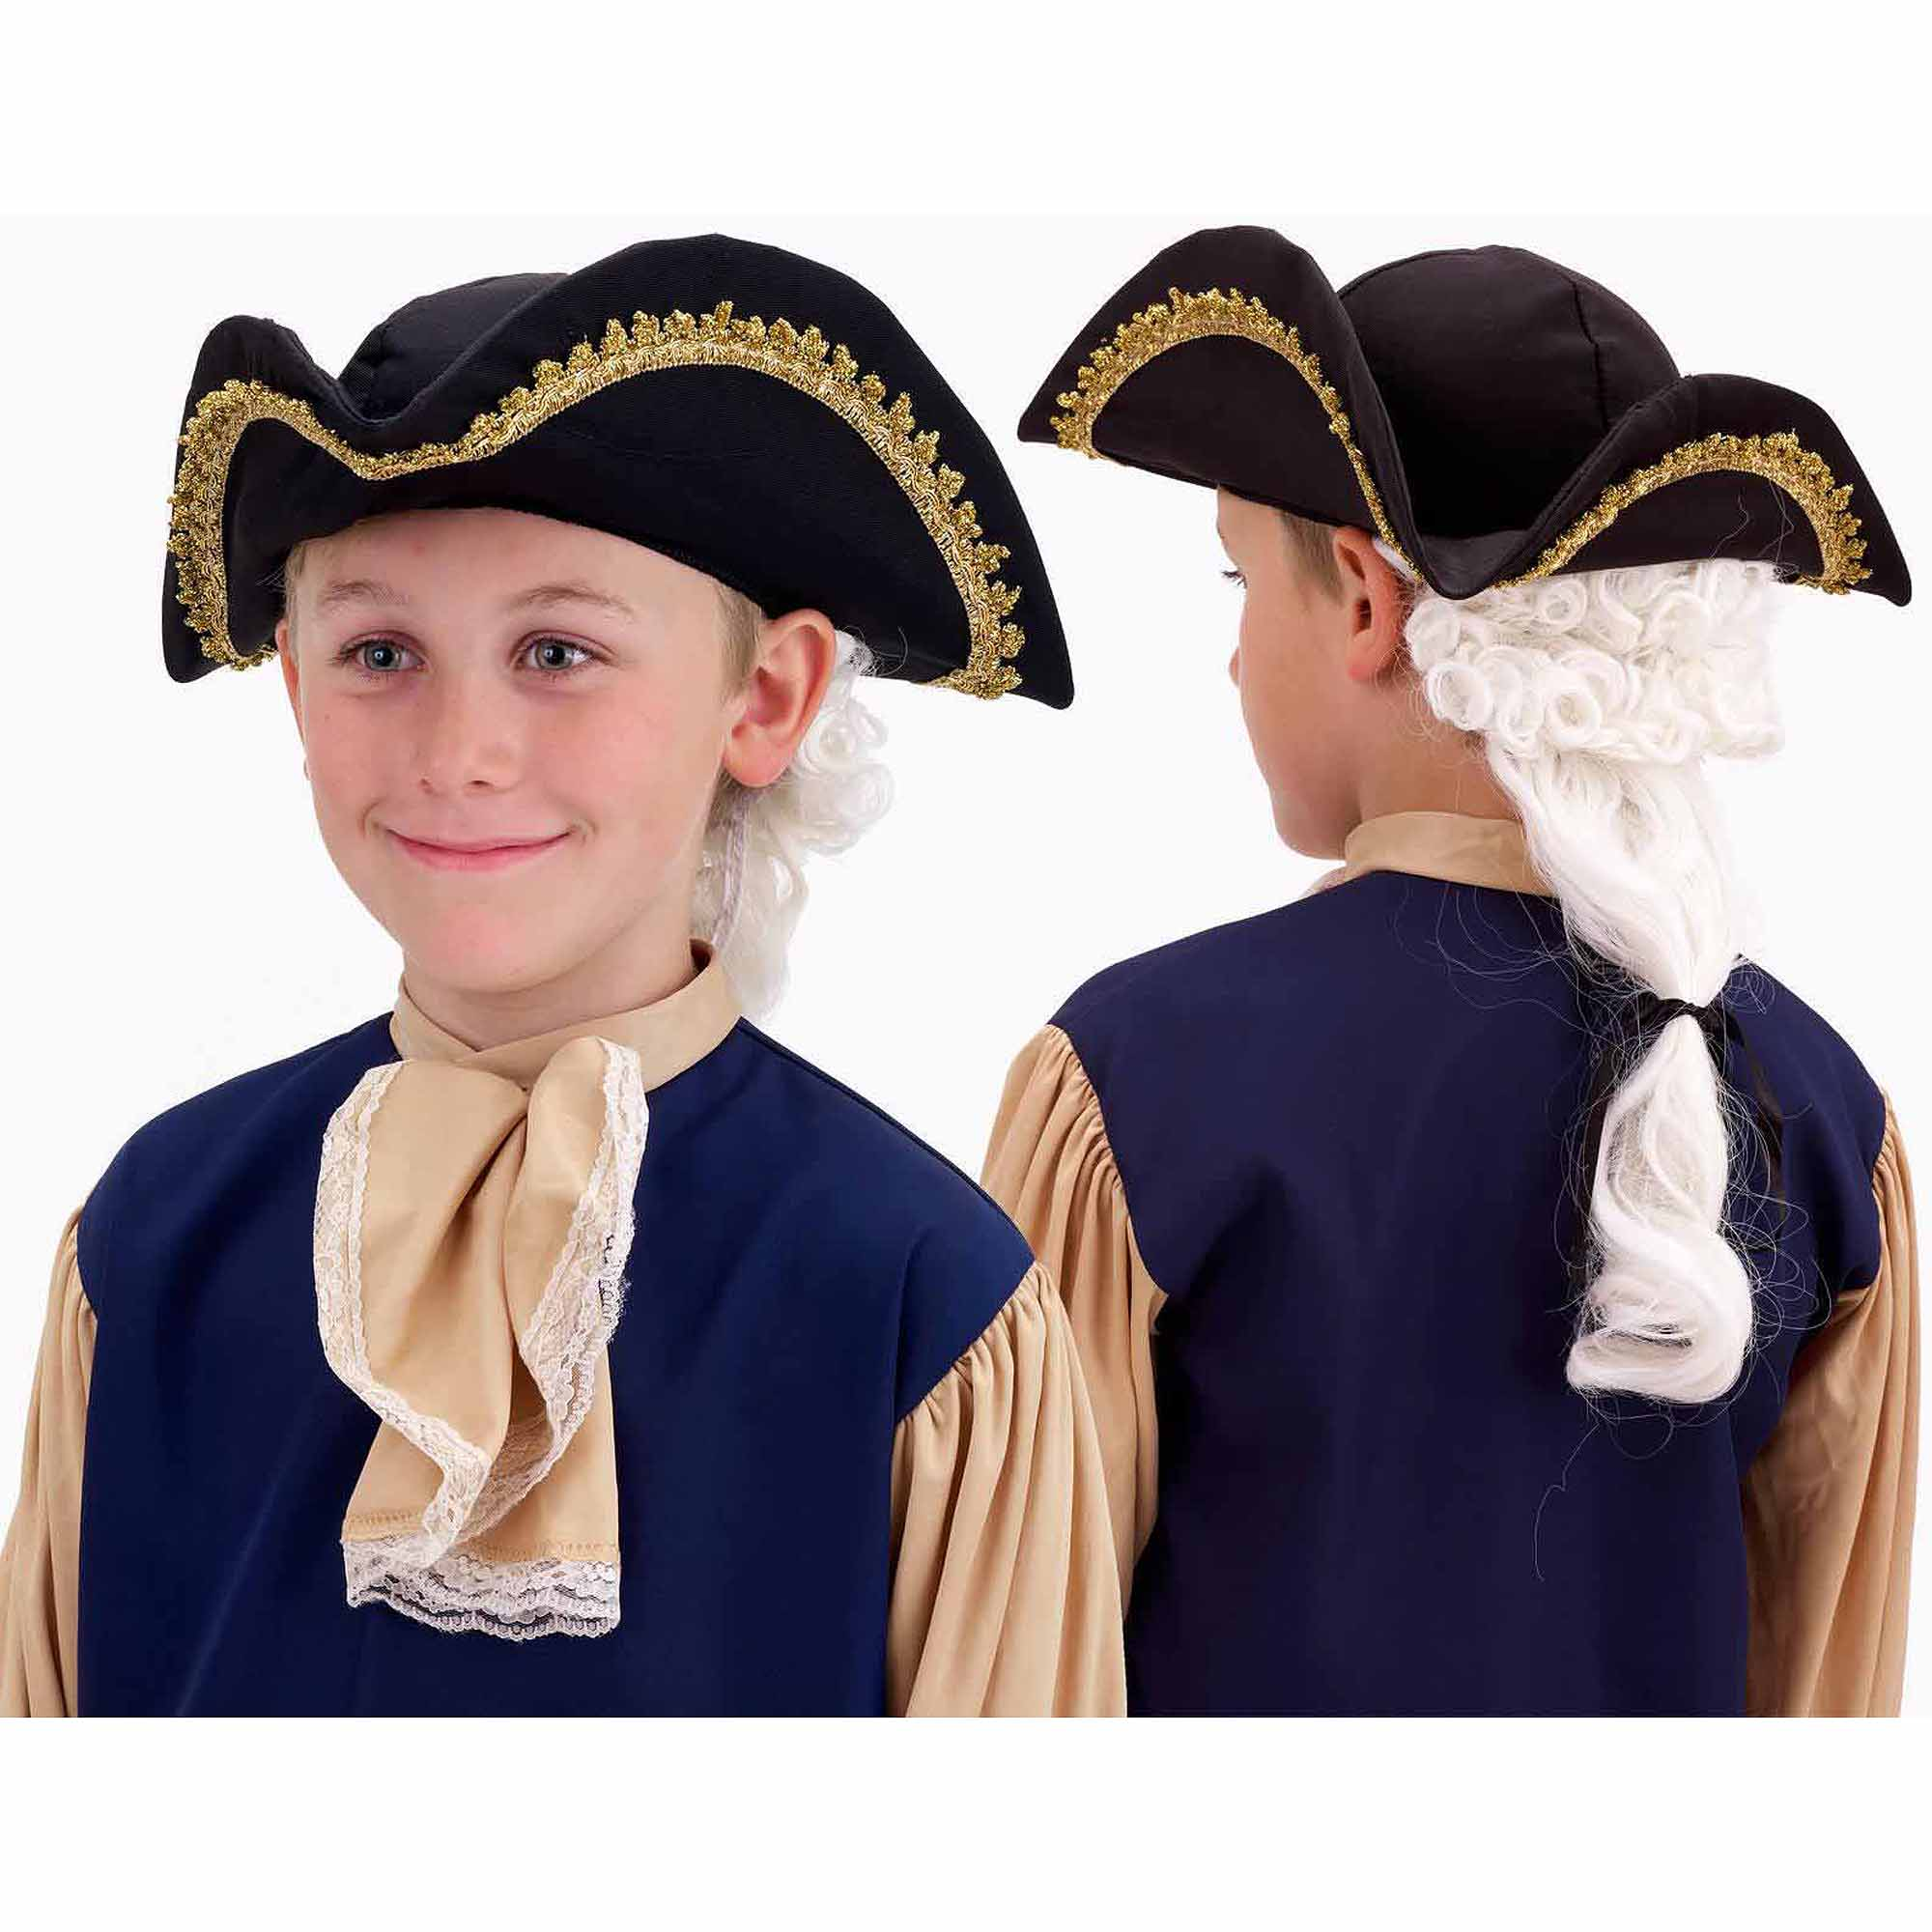 George washington colonials hat for Colonial hat template